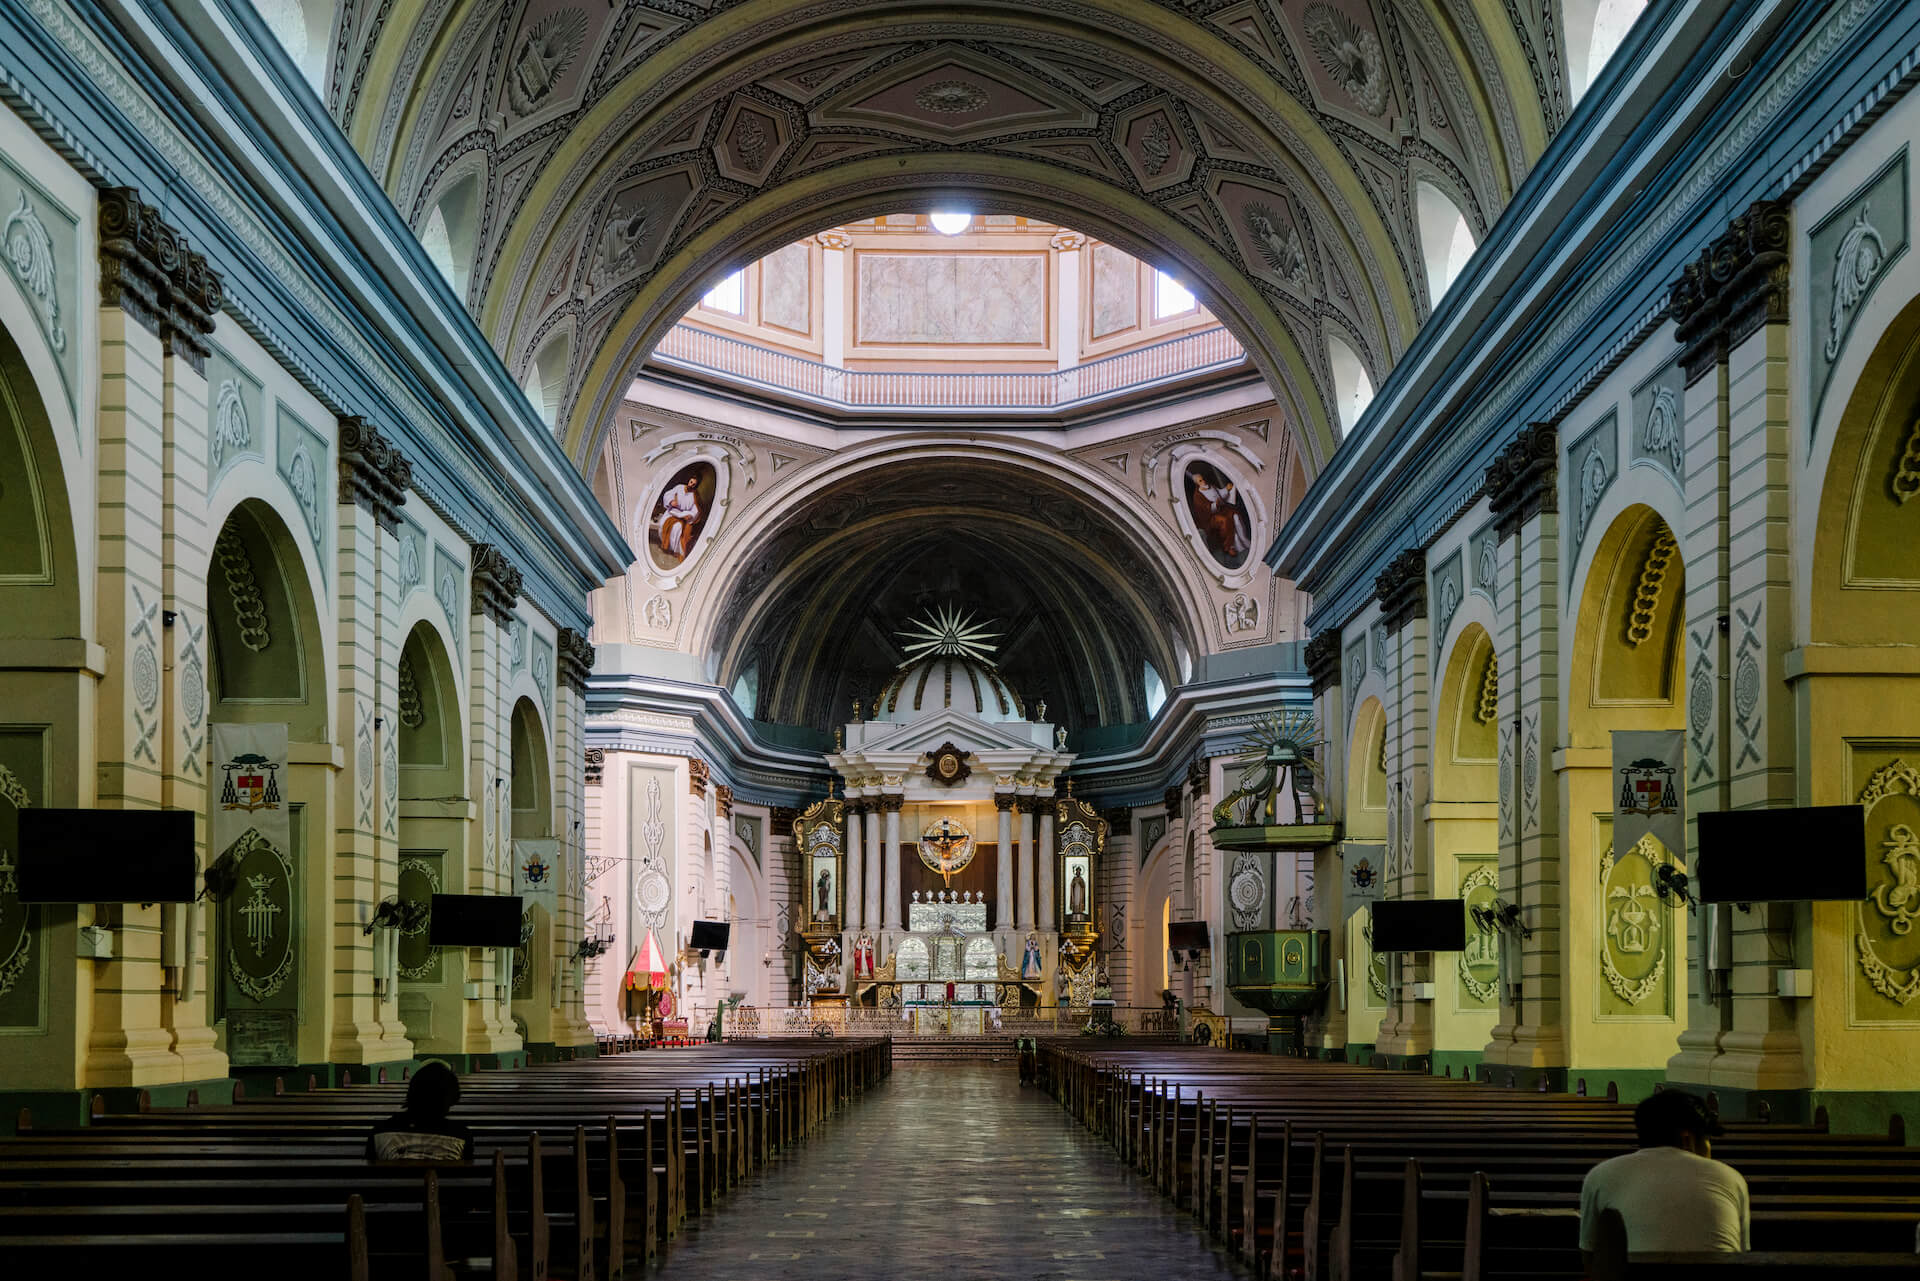 Interior shot of the Basilica of St. Martin of Tours